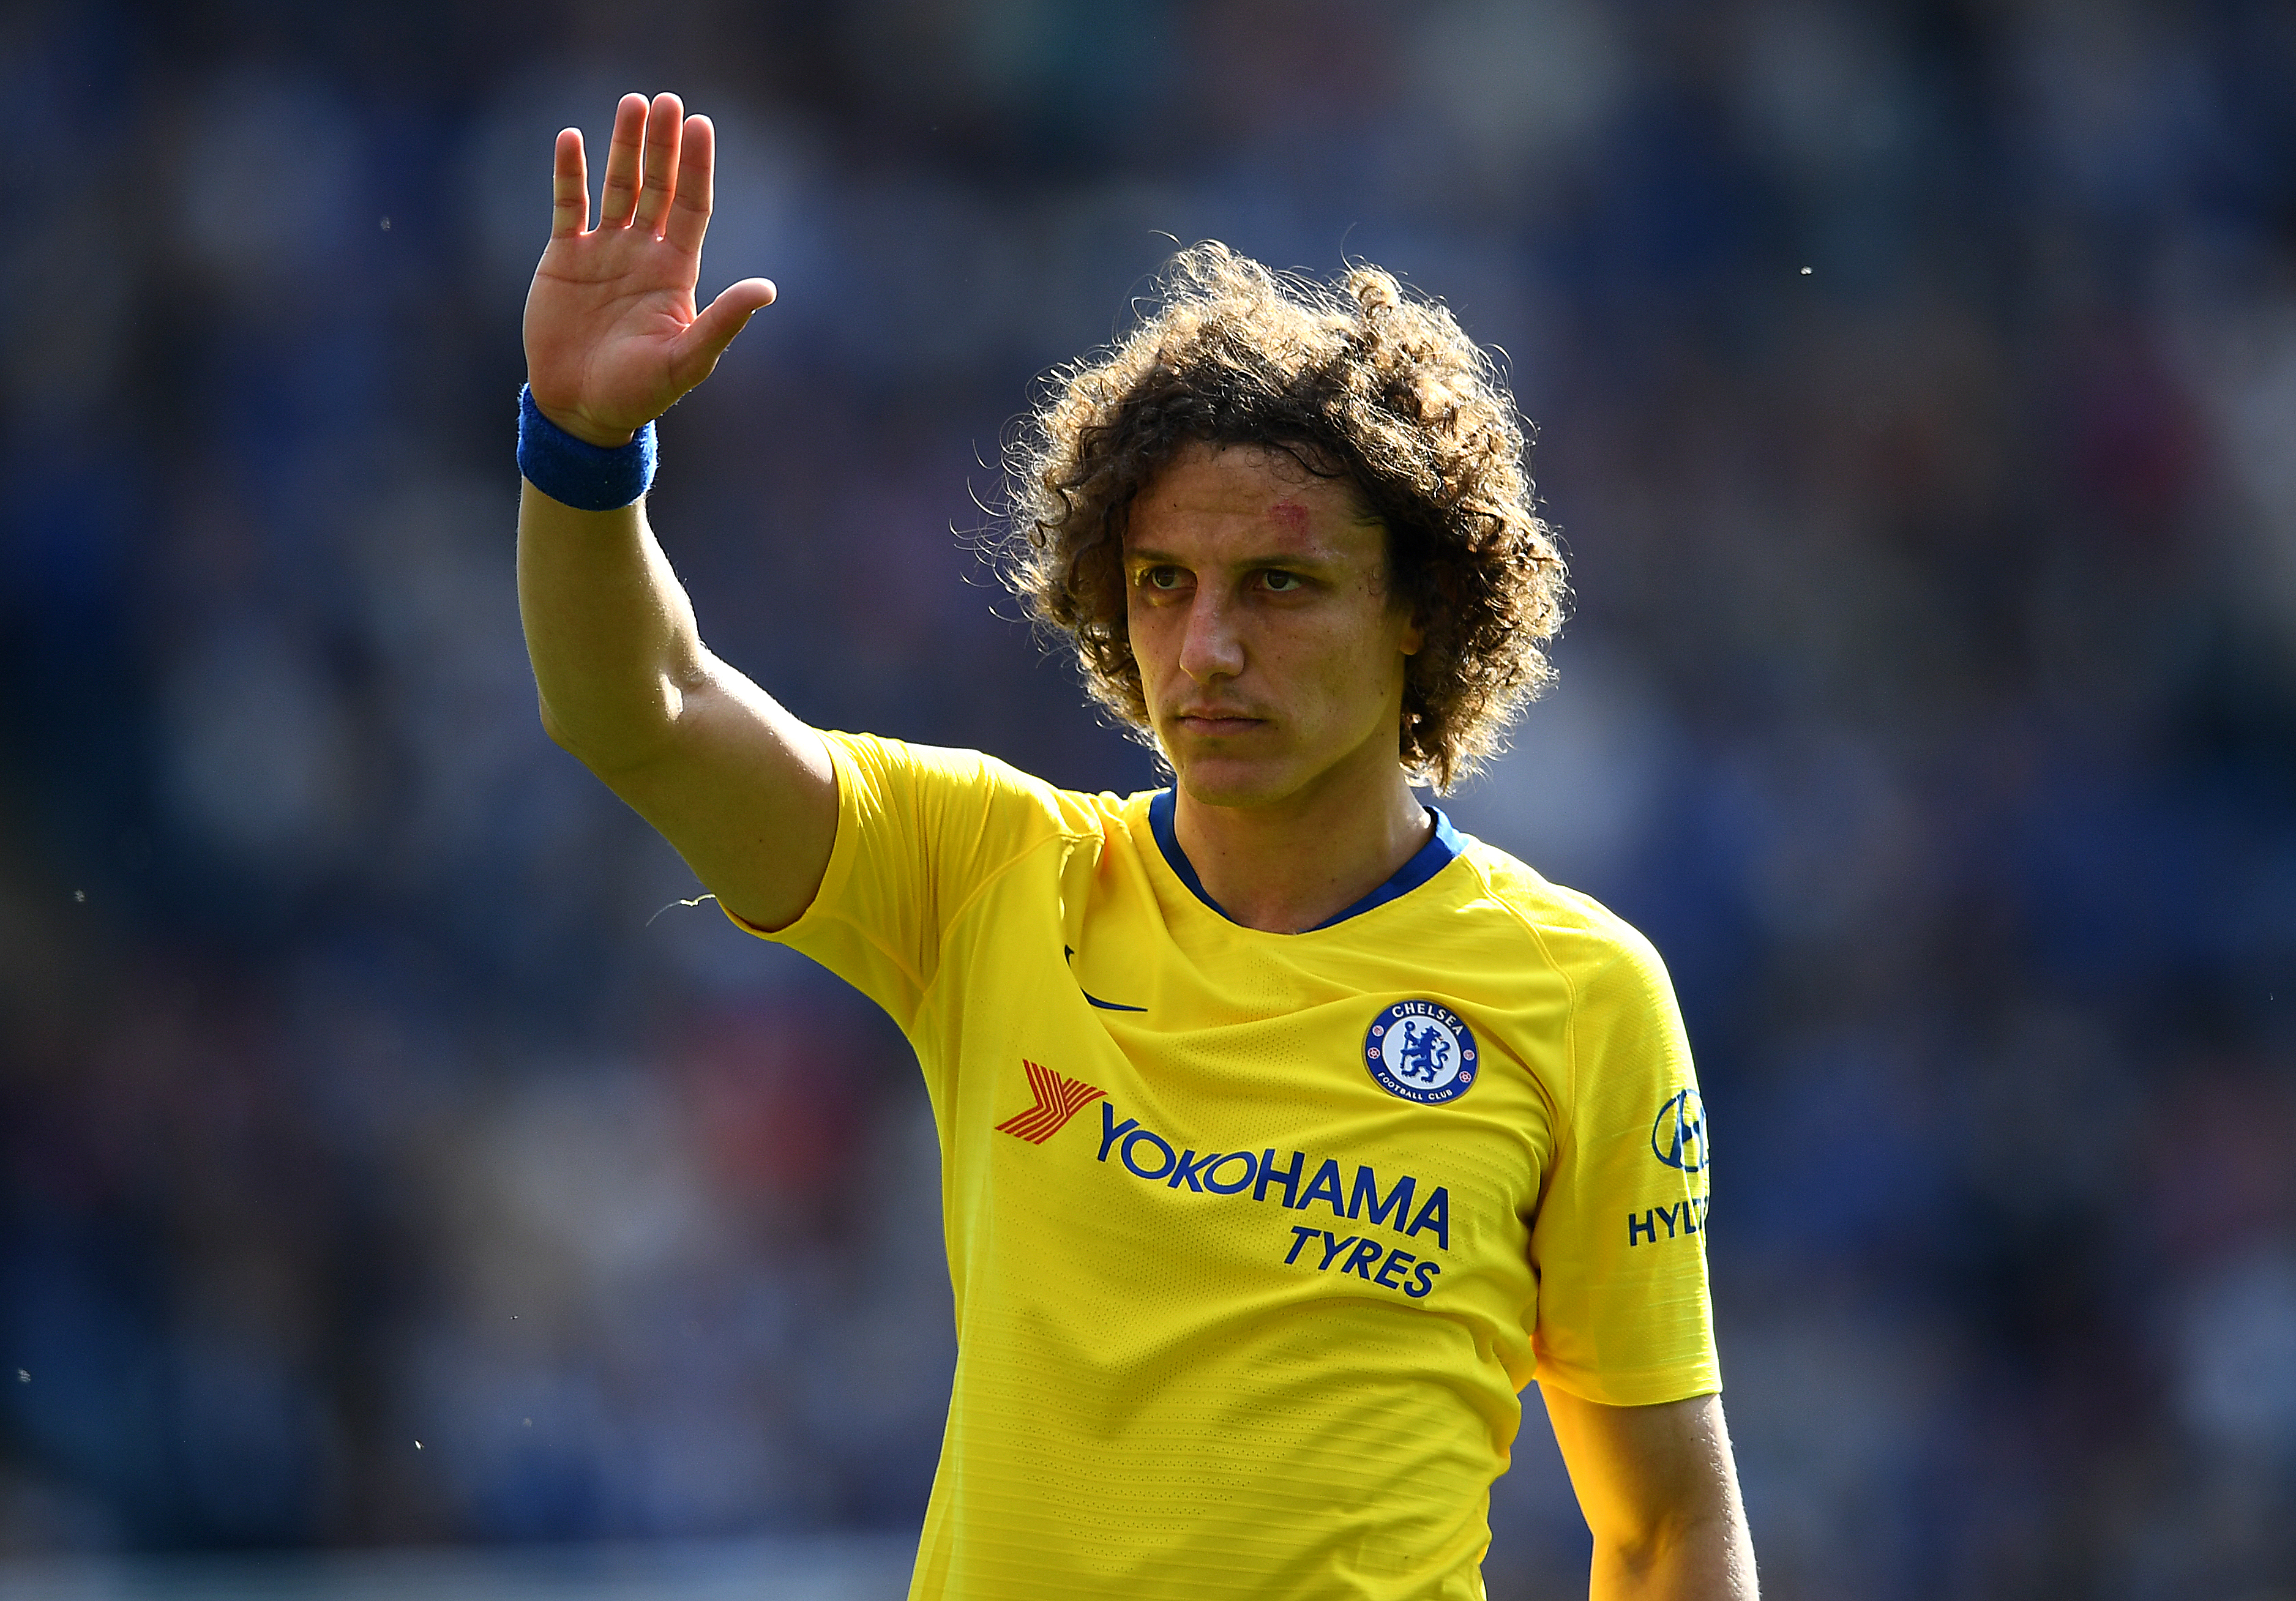 David Luiz believes he has 'a few more years' left in his career after 'special' season